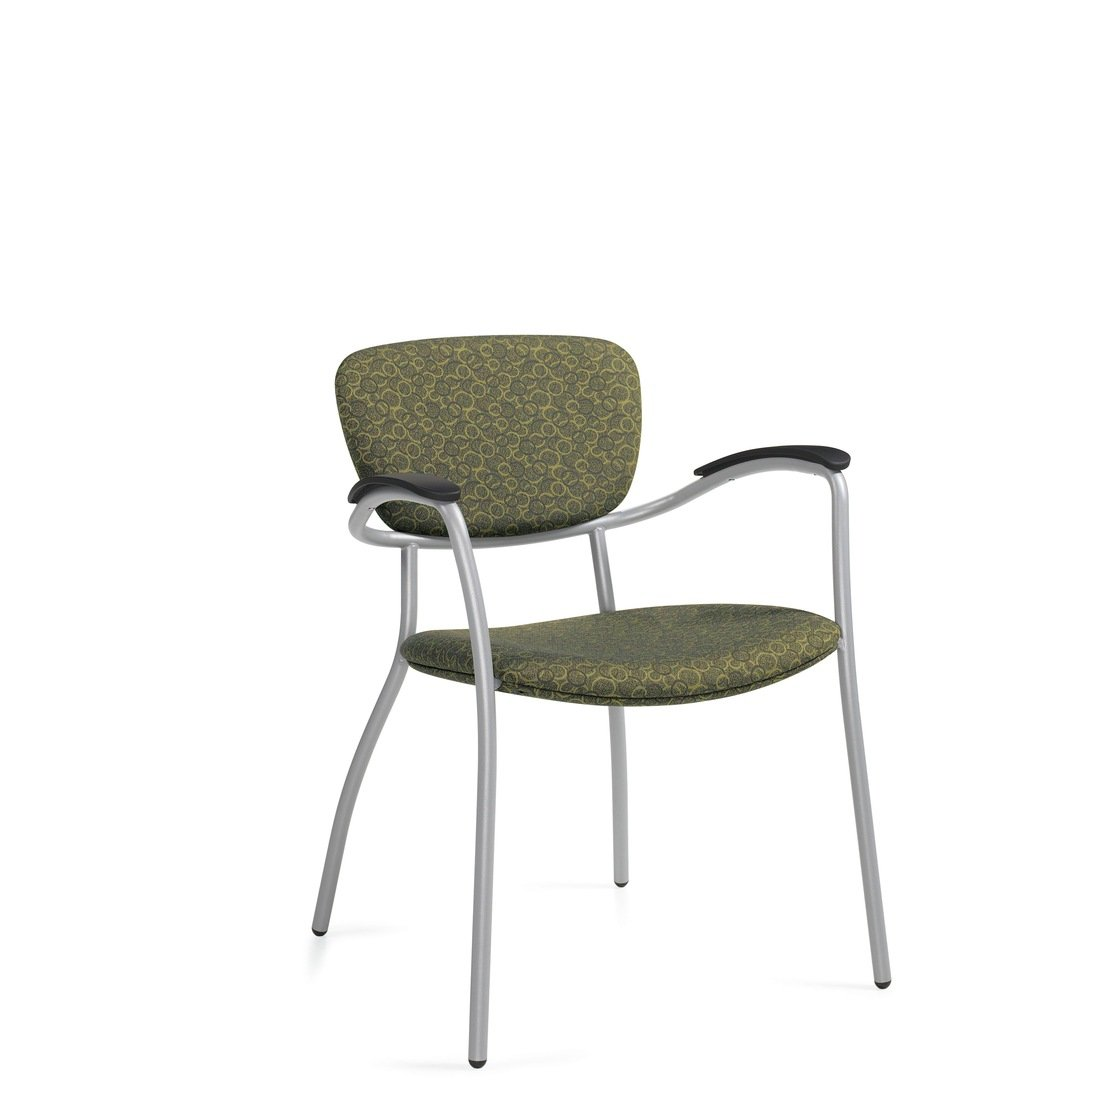 Caprice guest chair with arms, model 3365. This chair has been placed on a white background.